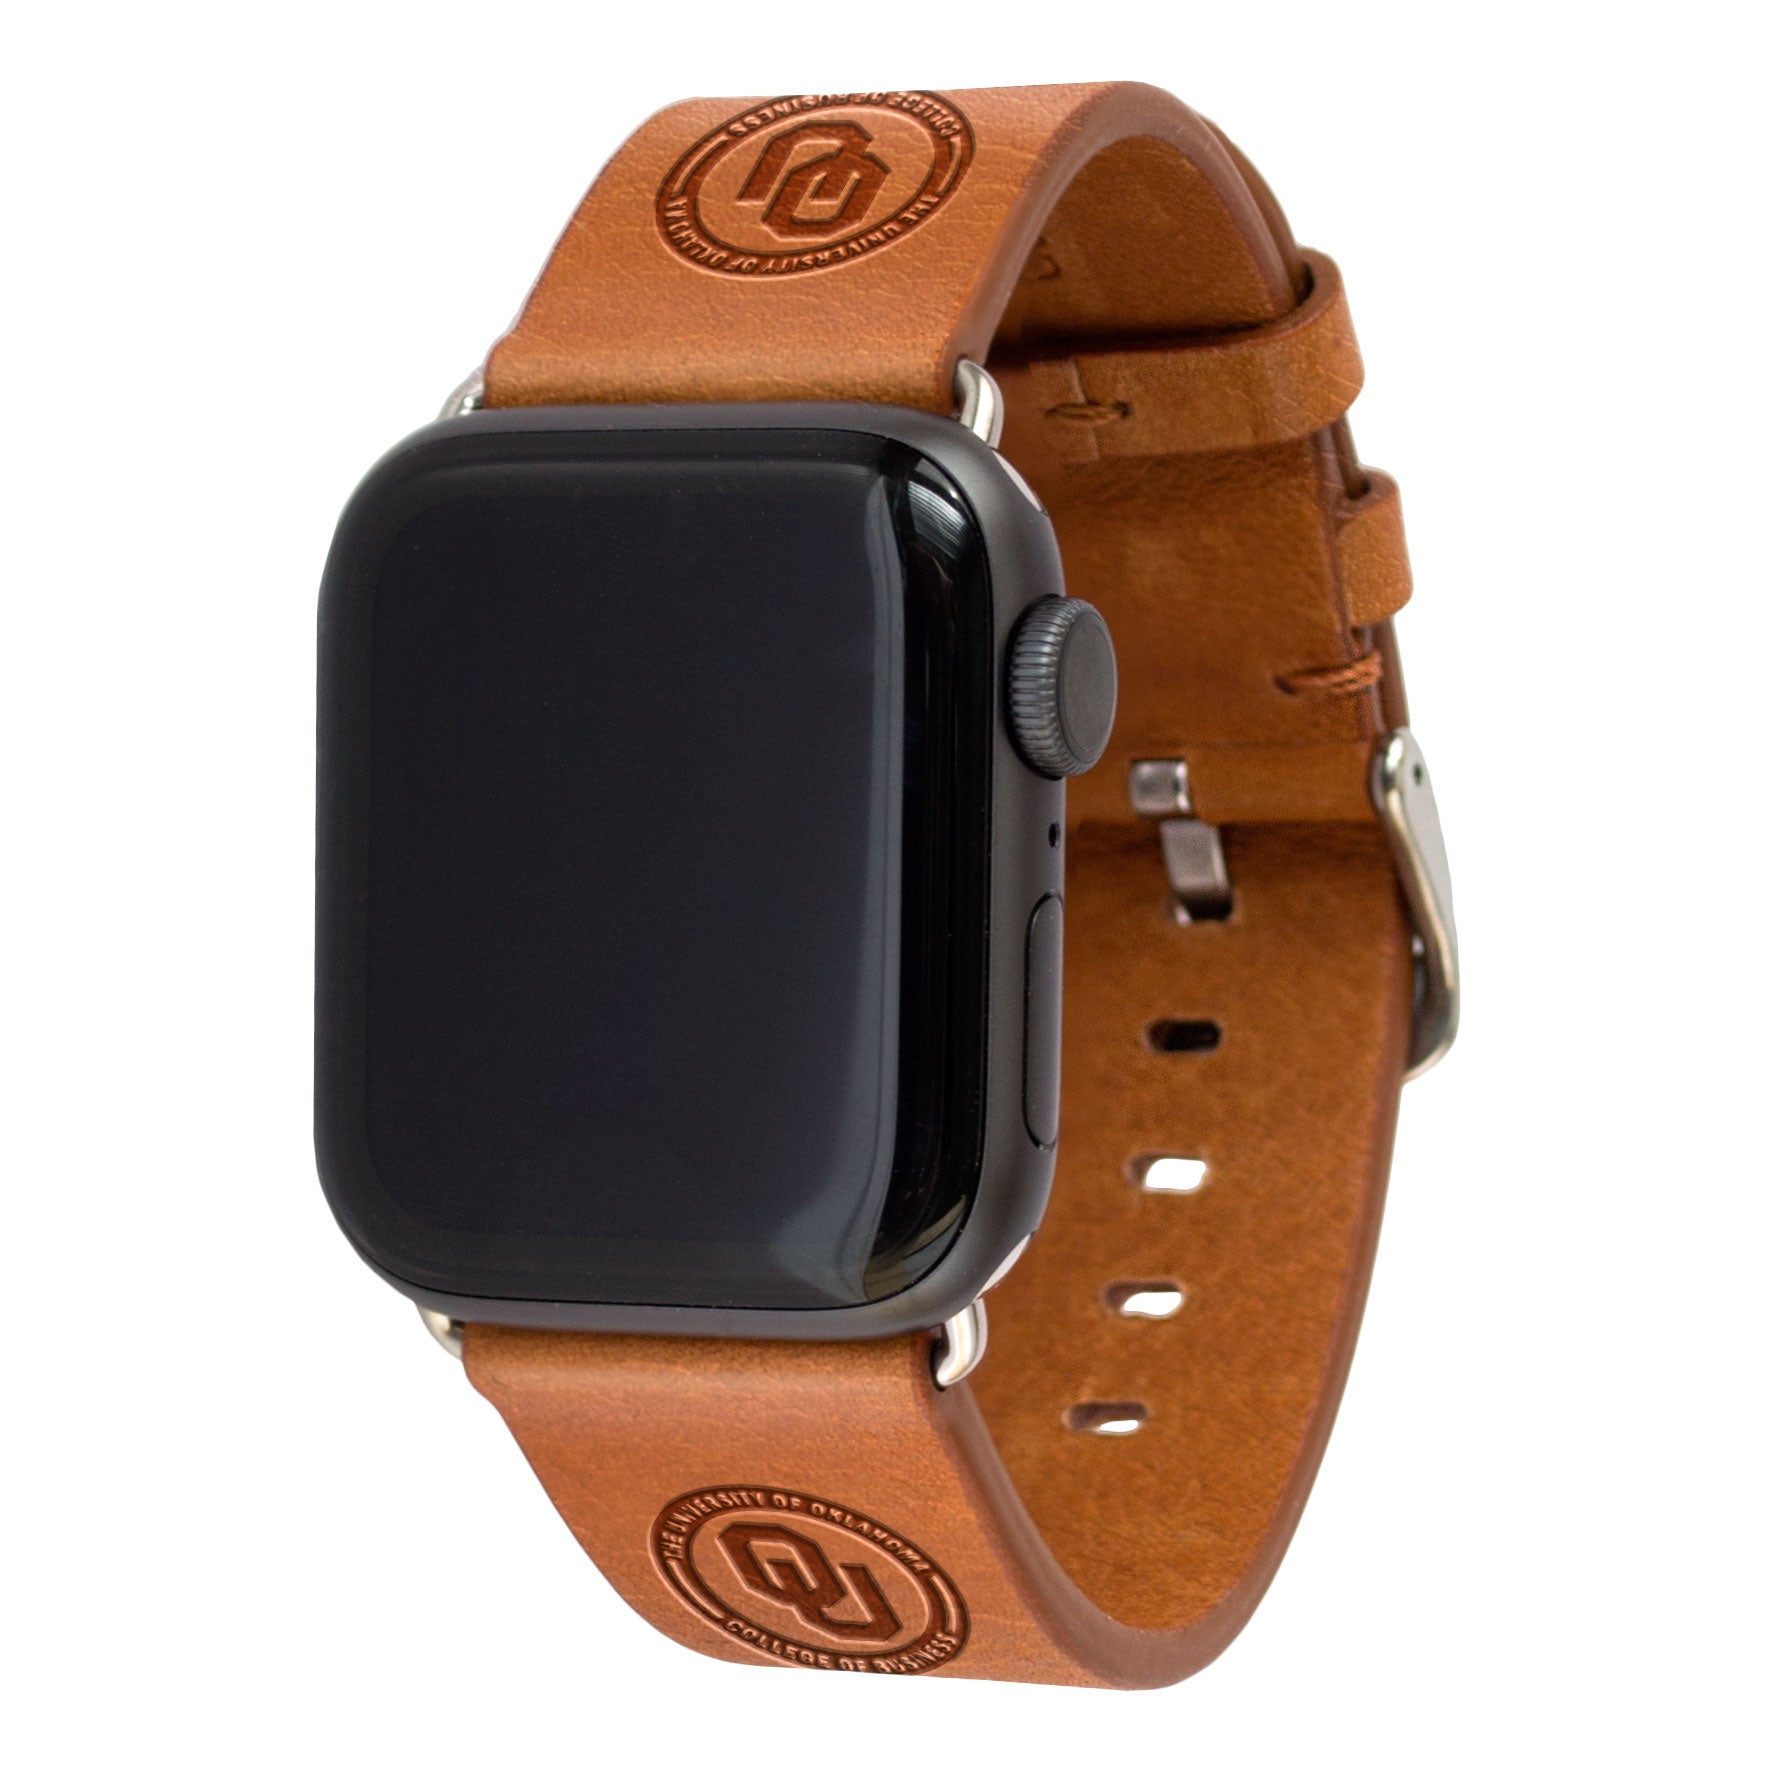 Price College of Business Leather Apple Watch Band